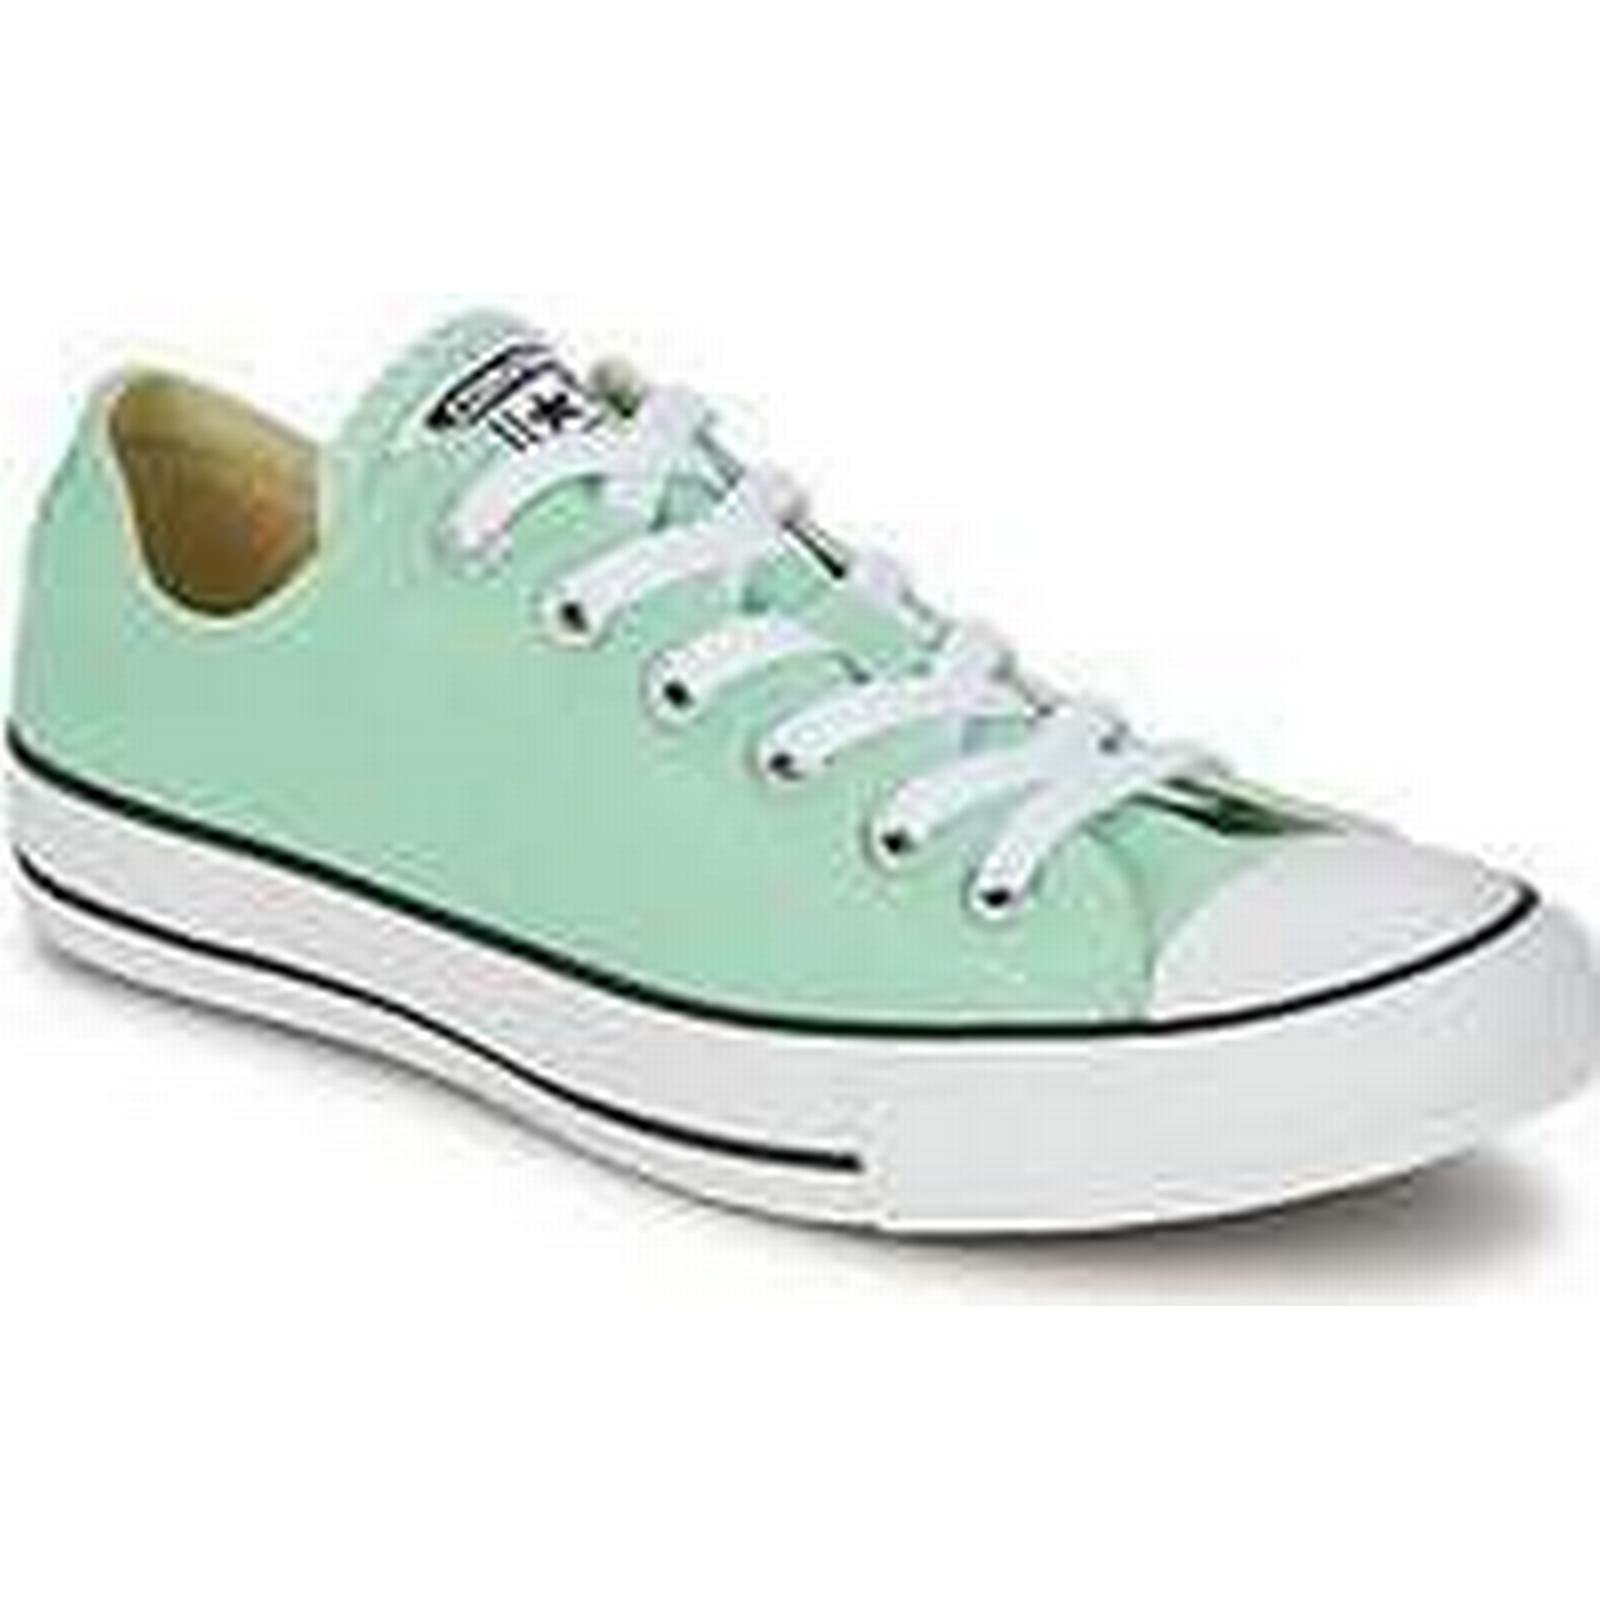 converse all star saison ox femmes | Emballage Emballage Emballage élégant Et Robuste  | De Qualité  | Up-to-date Styling  | Up-to-date Styling  49ea50